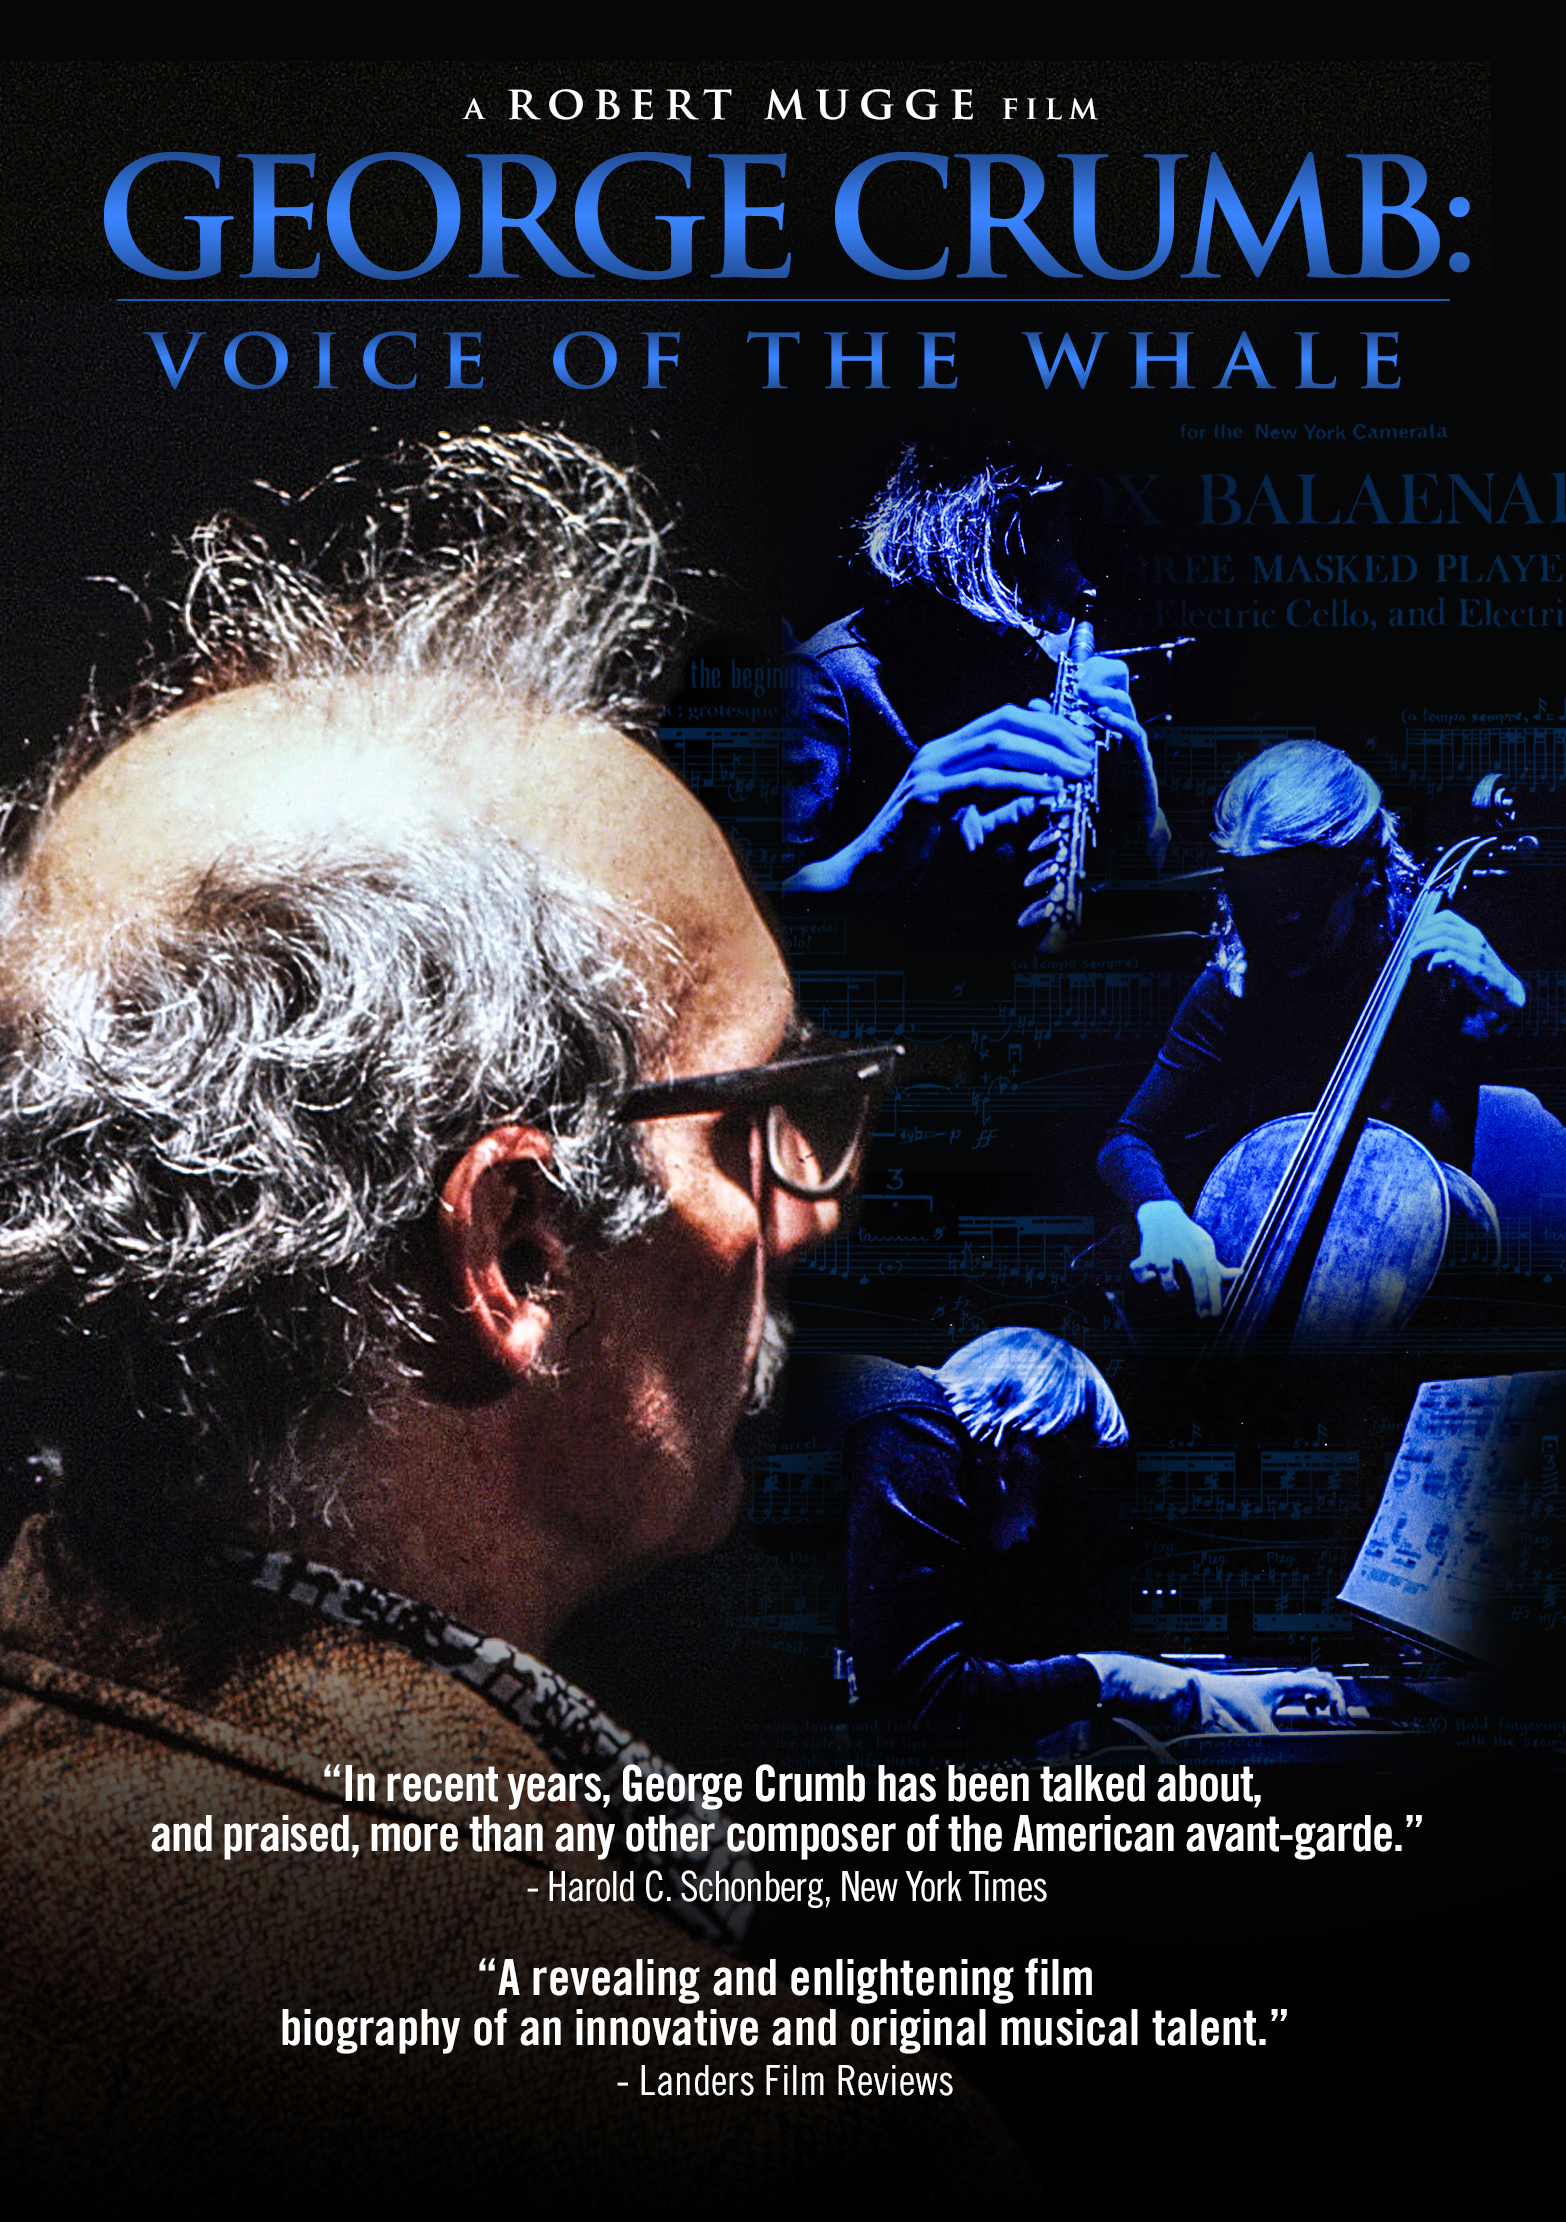 George Crumb: The Voice of the Whale